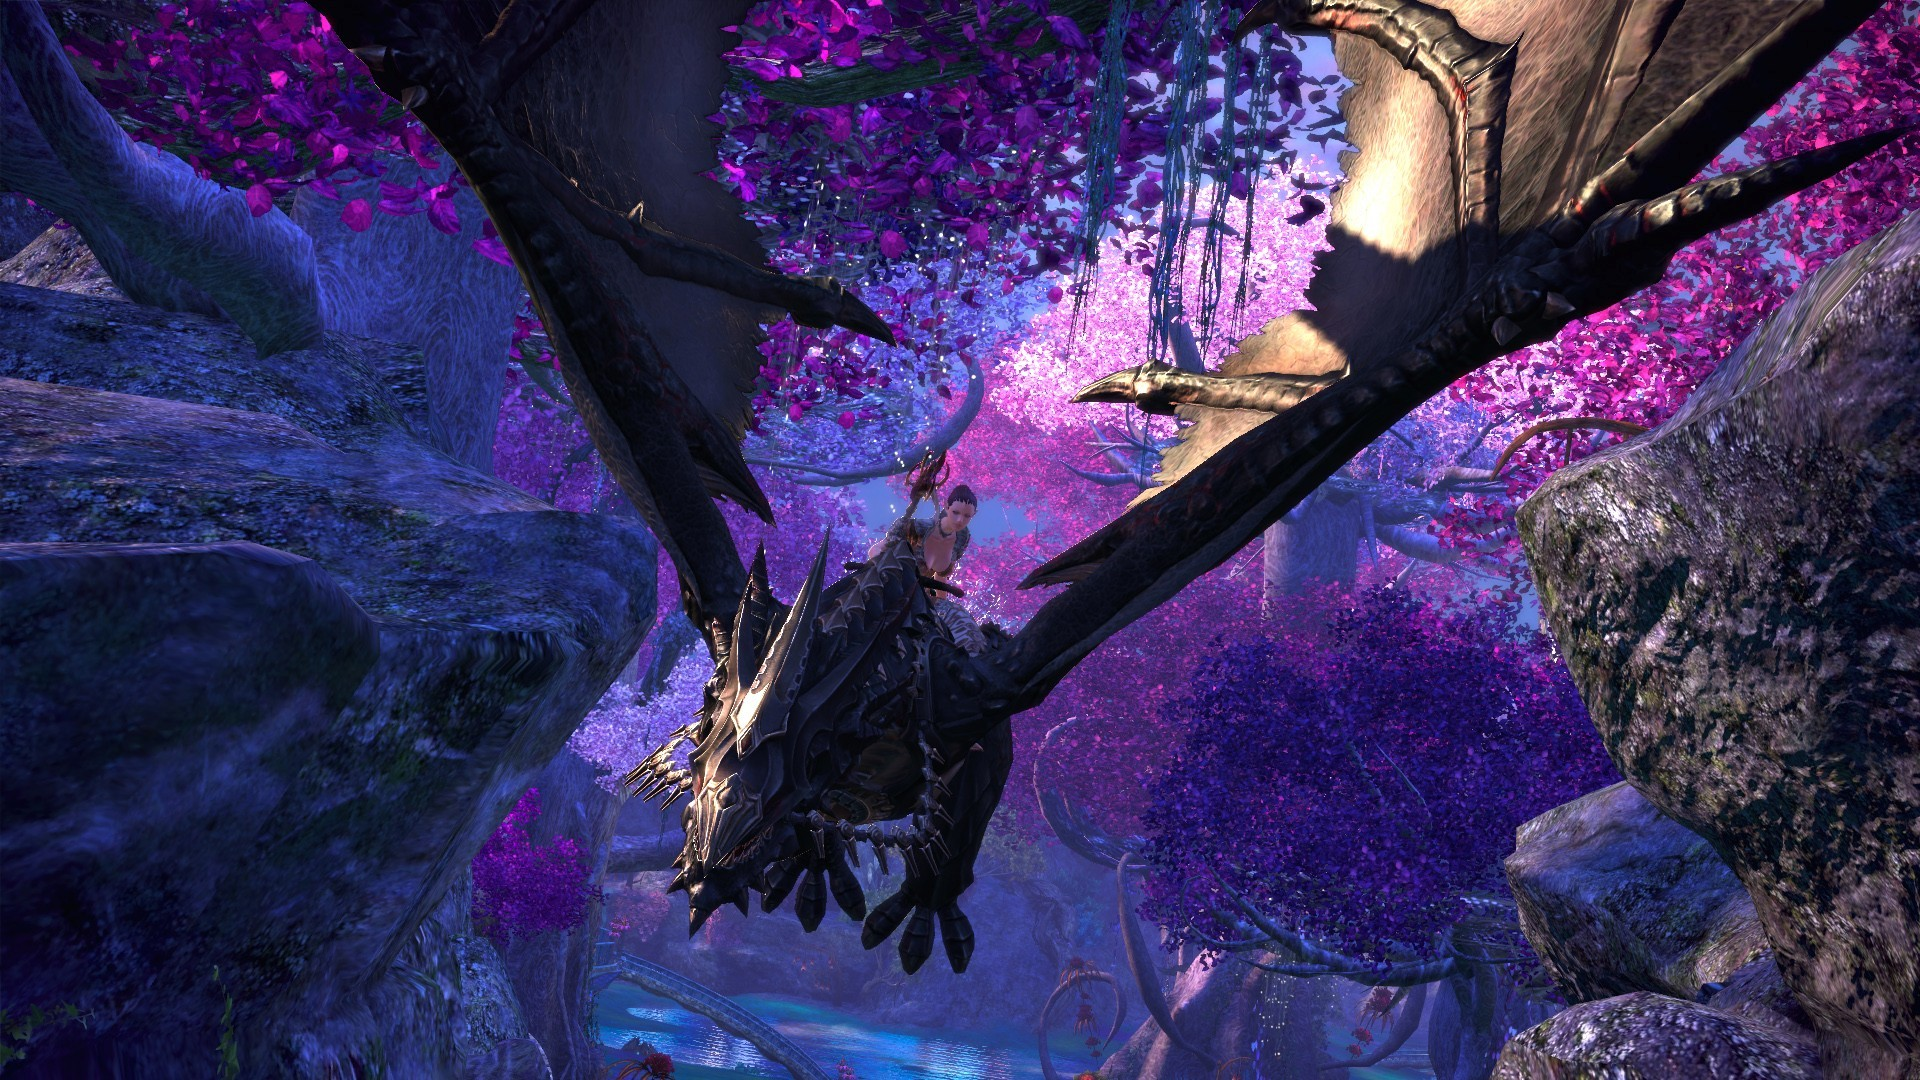 tera rising wallpaper - photo #2